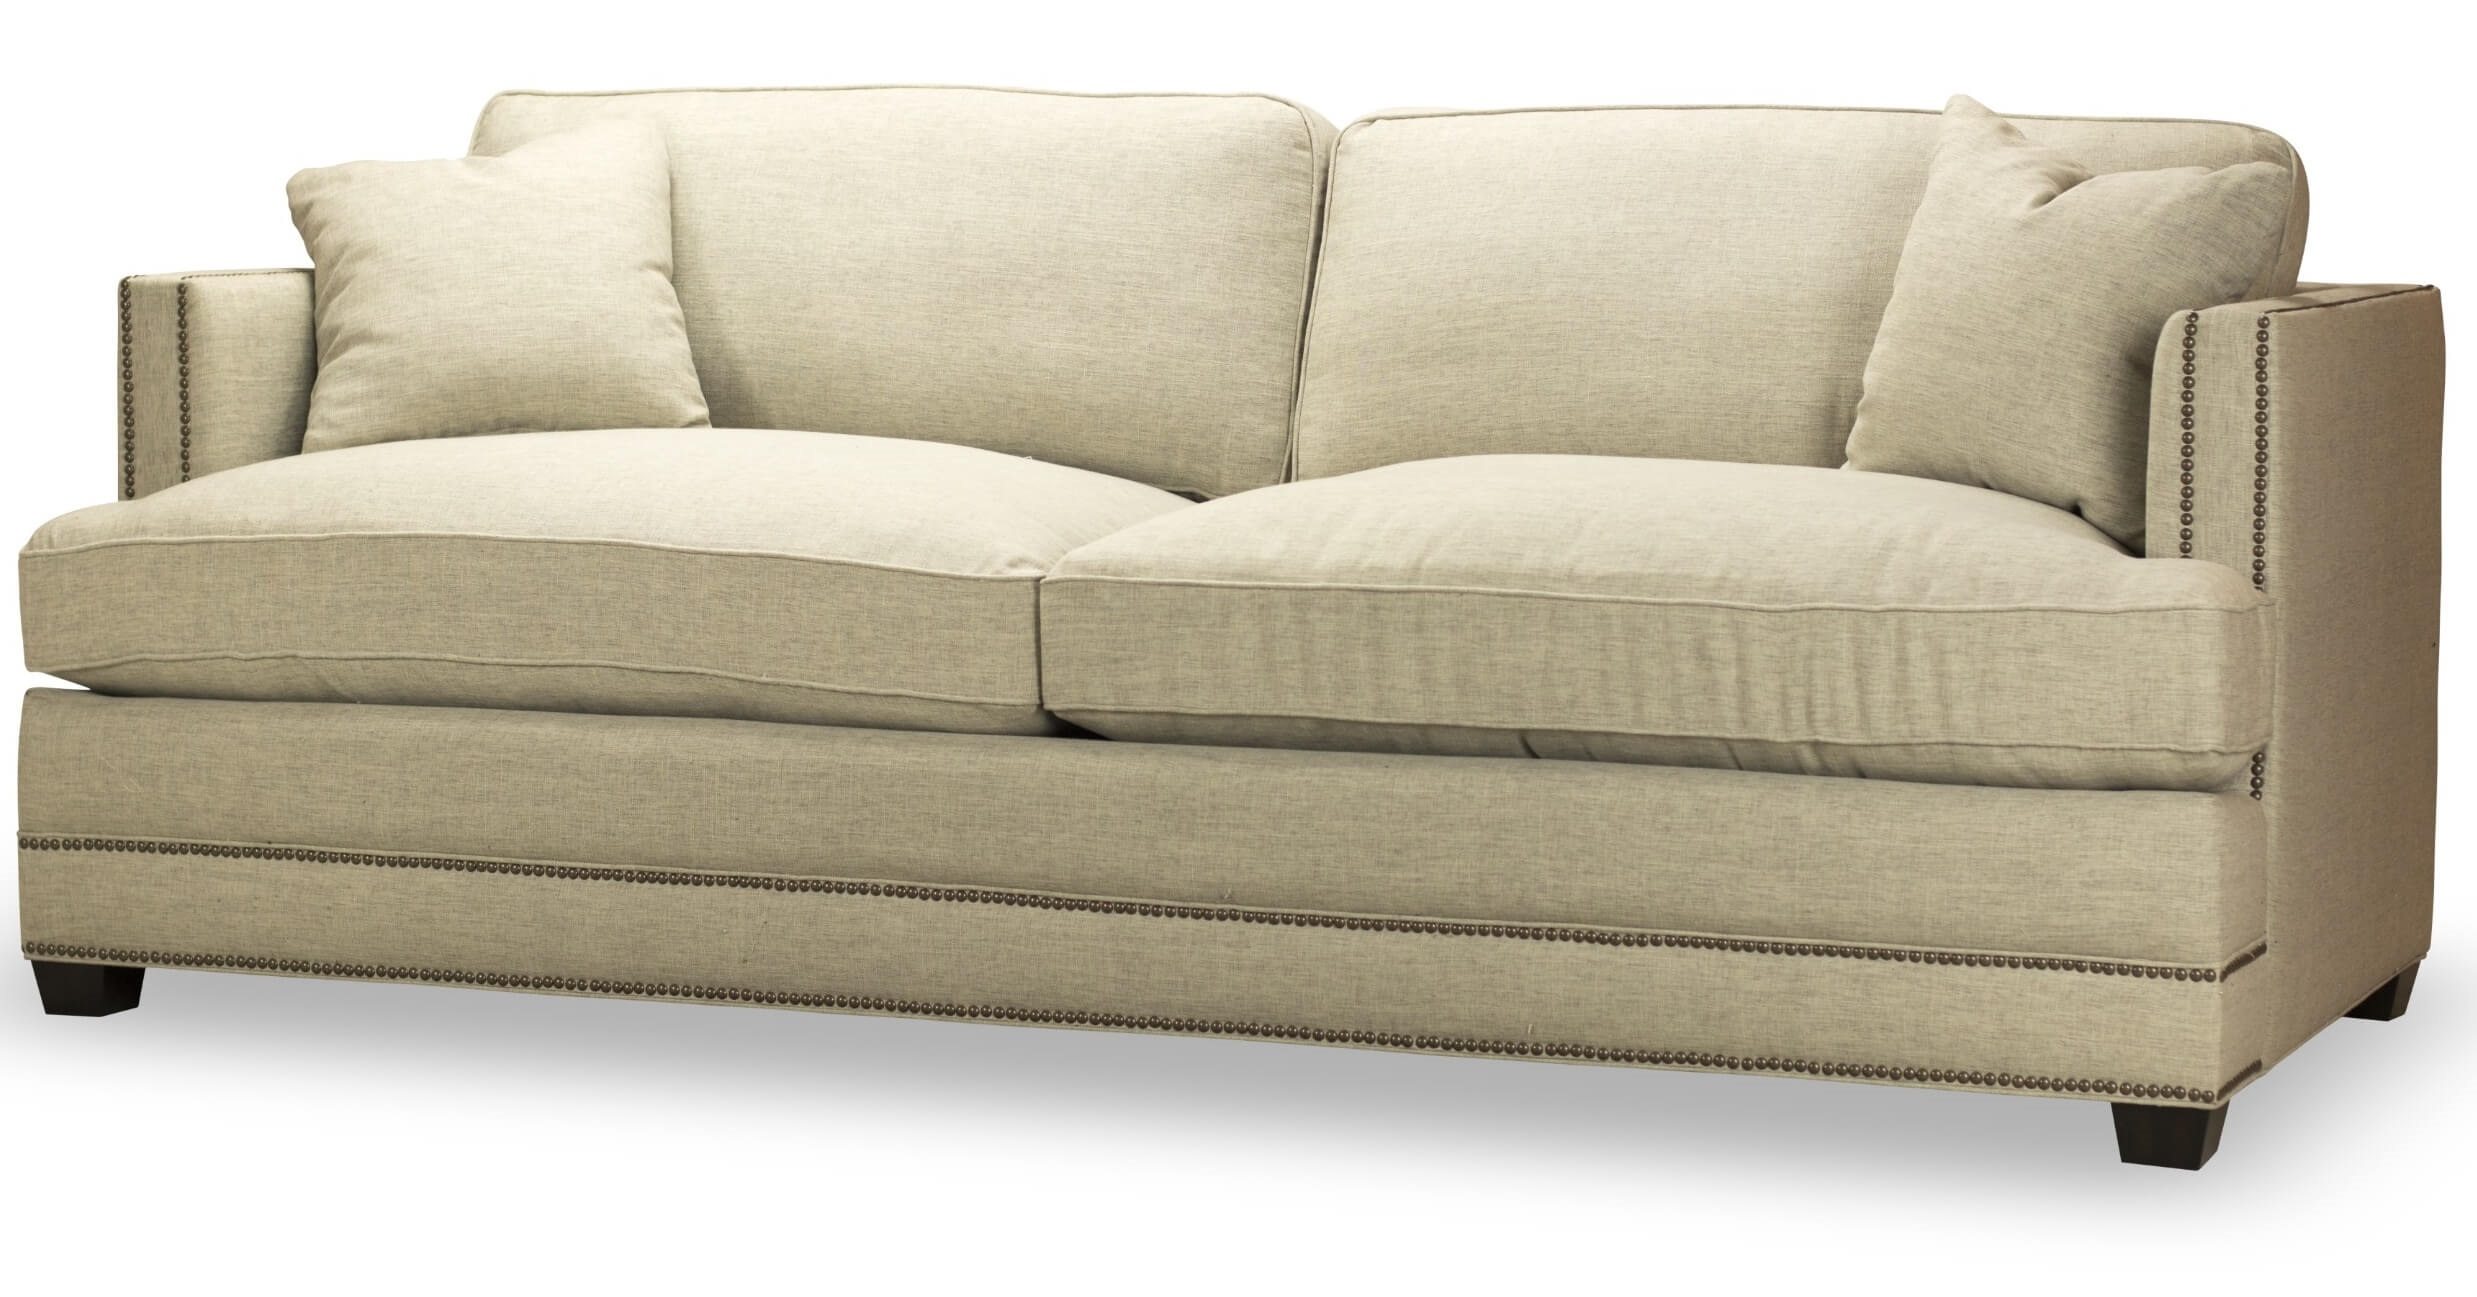 Furniture Markham Markham Sofa Wheat Fabric Spectra Home Wc S3143 30 Usa